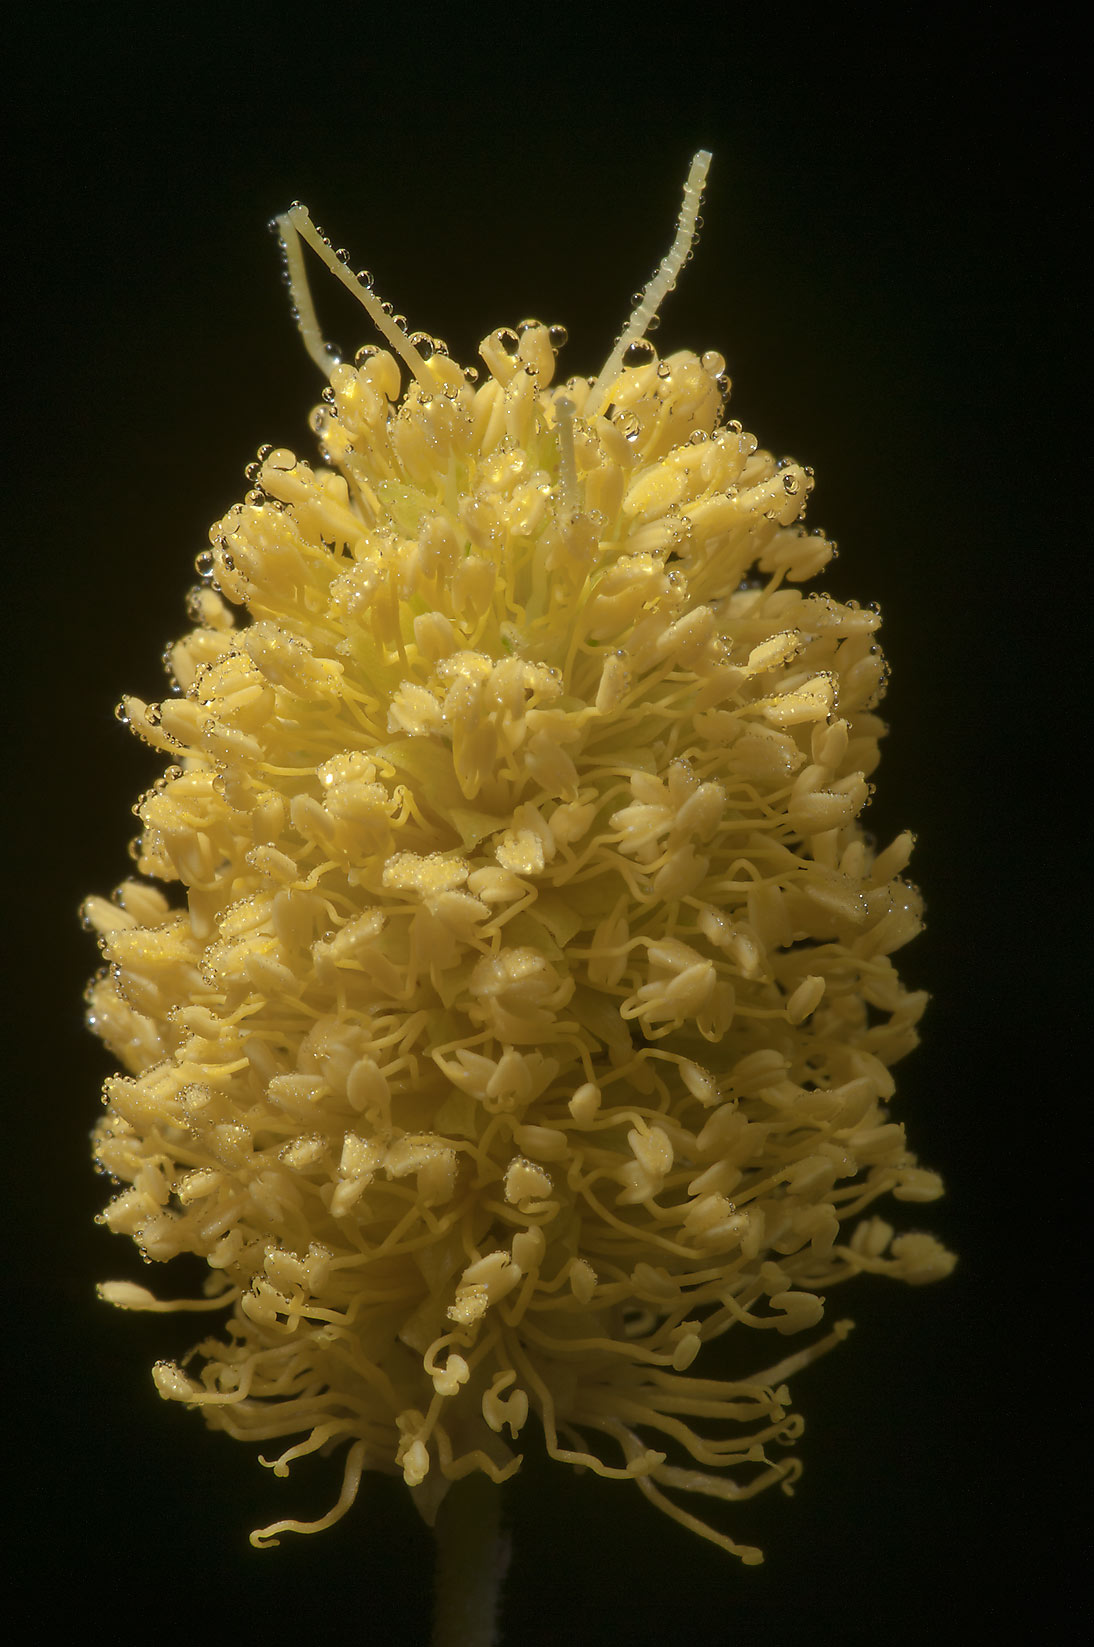 Yellow puff (Neptunia lutea) in Lick Creek Park. College Station, Texas